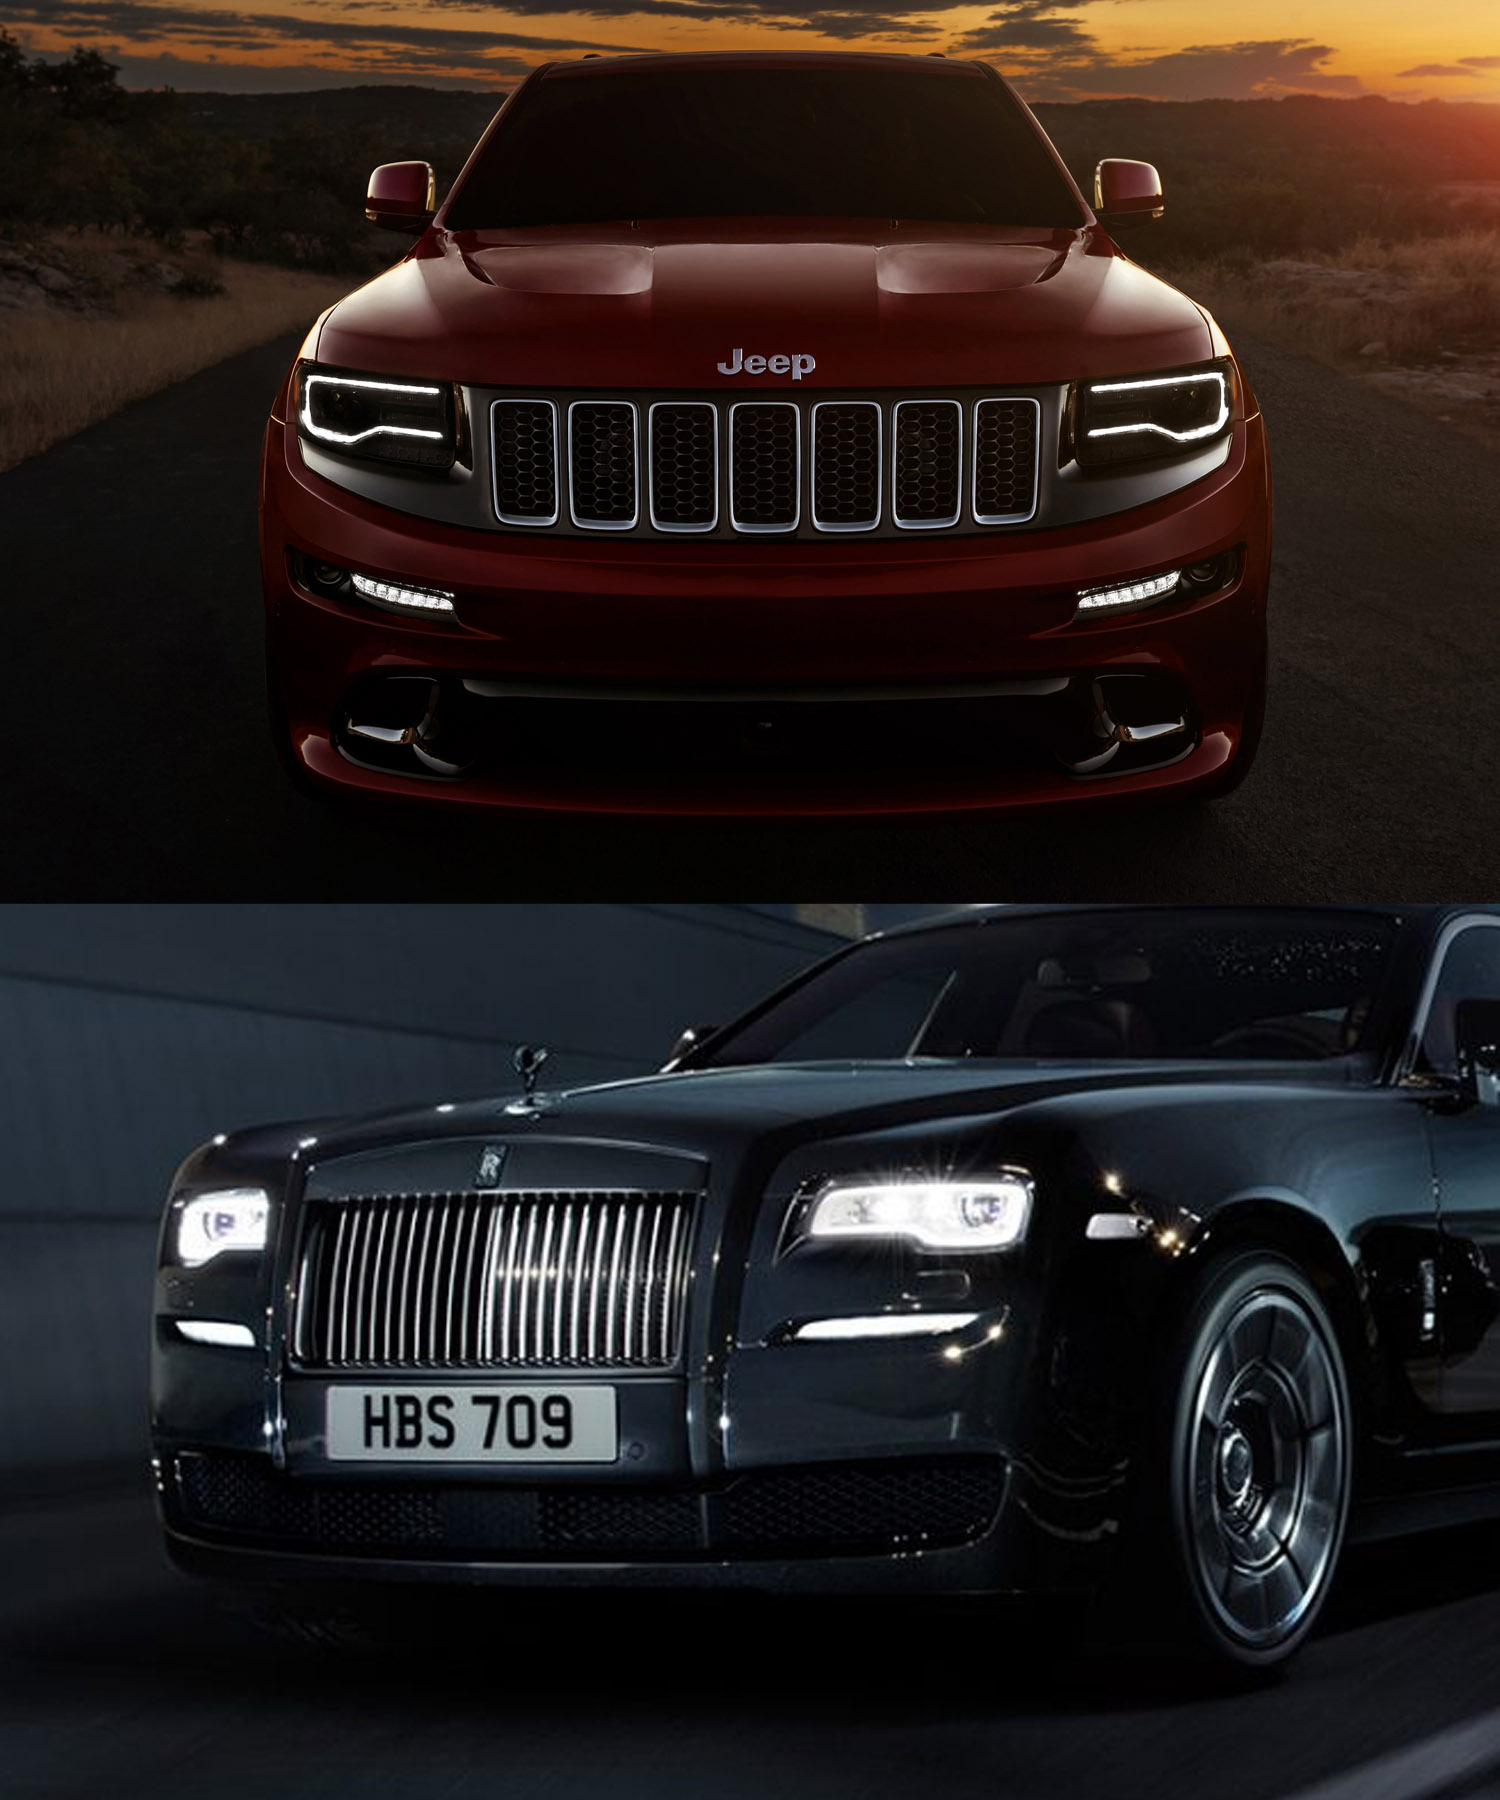 Just Realised How Similar The Lights Of The Grand Cherokee Srt Are To The Rolls Royce Ghost Wraith